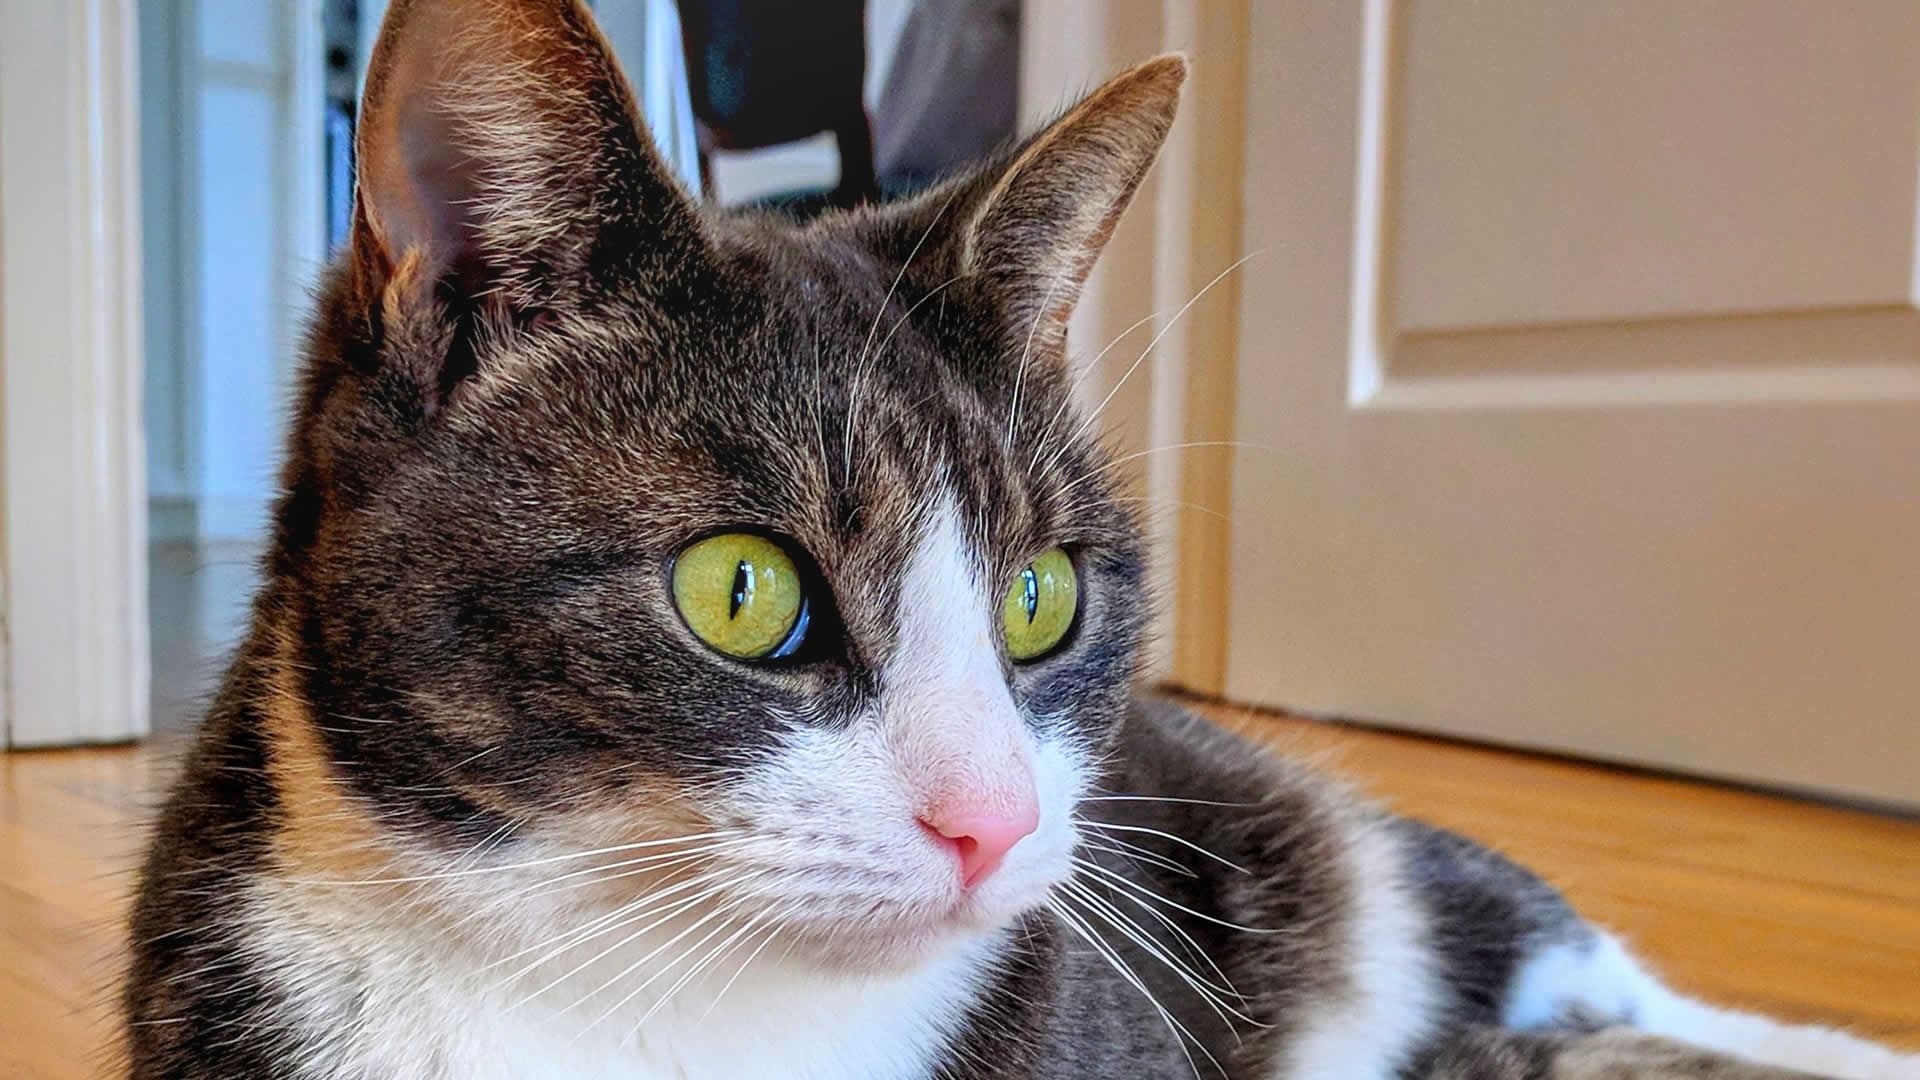 Most Manx cats will have yellow eyes, varying from golden to orange hues